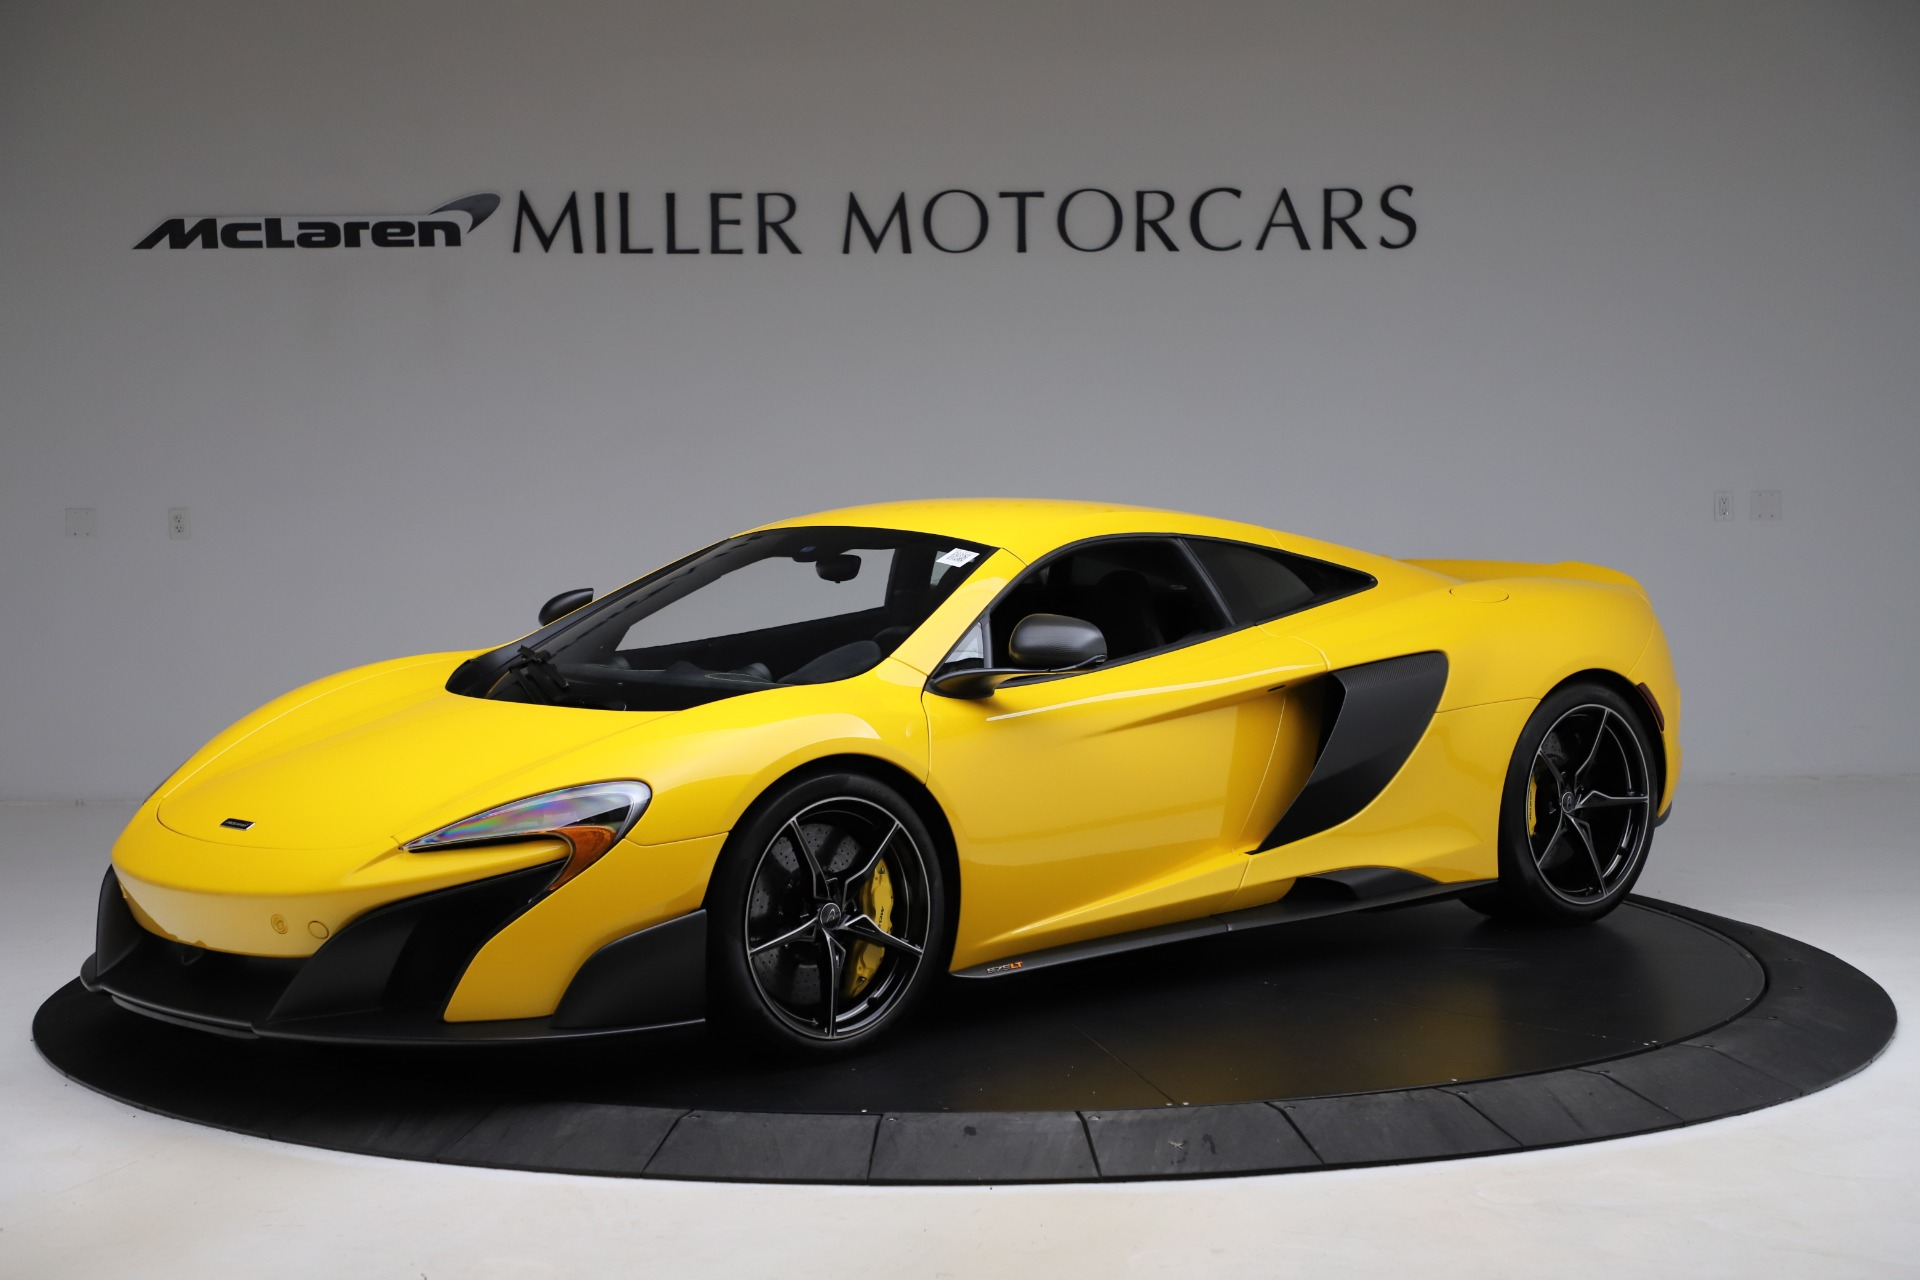 Used 2016 McLaren 675LT Coupe for sale $225,900 at Alfa Romeo of Greenwich in Greenwich CT 06830 1